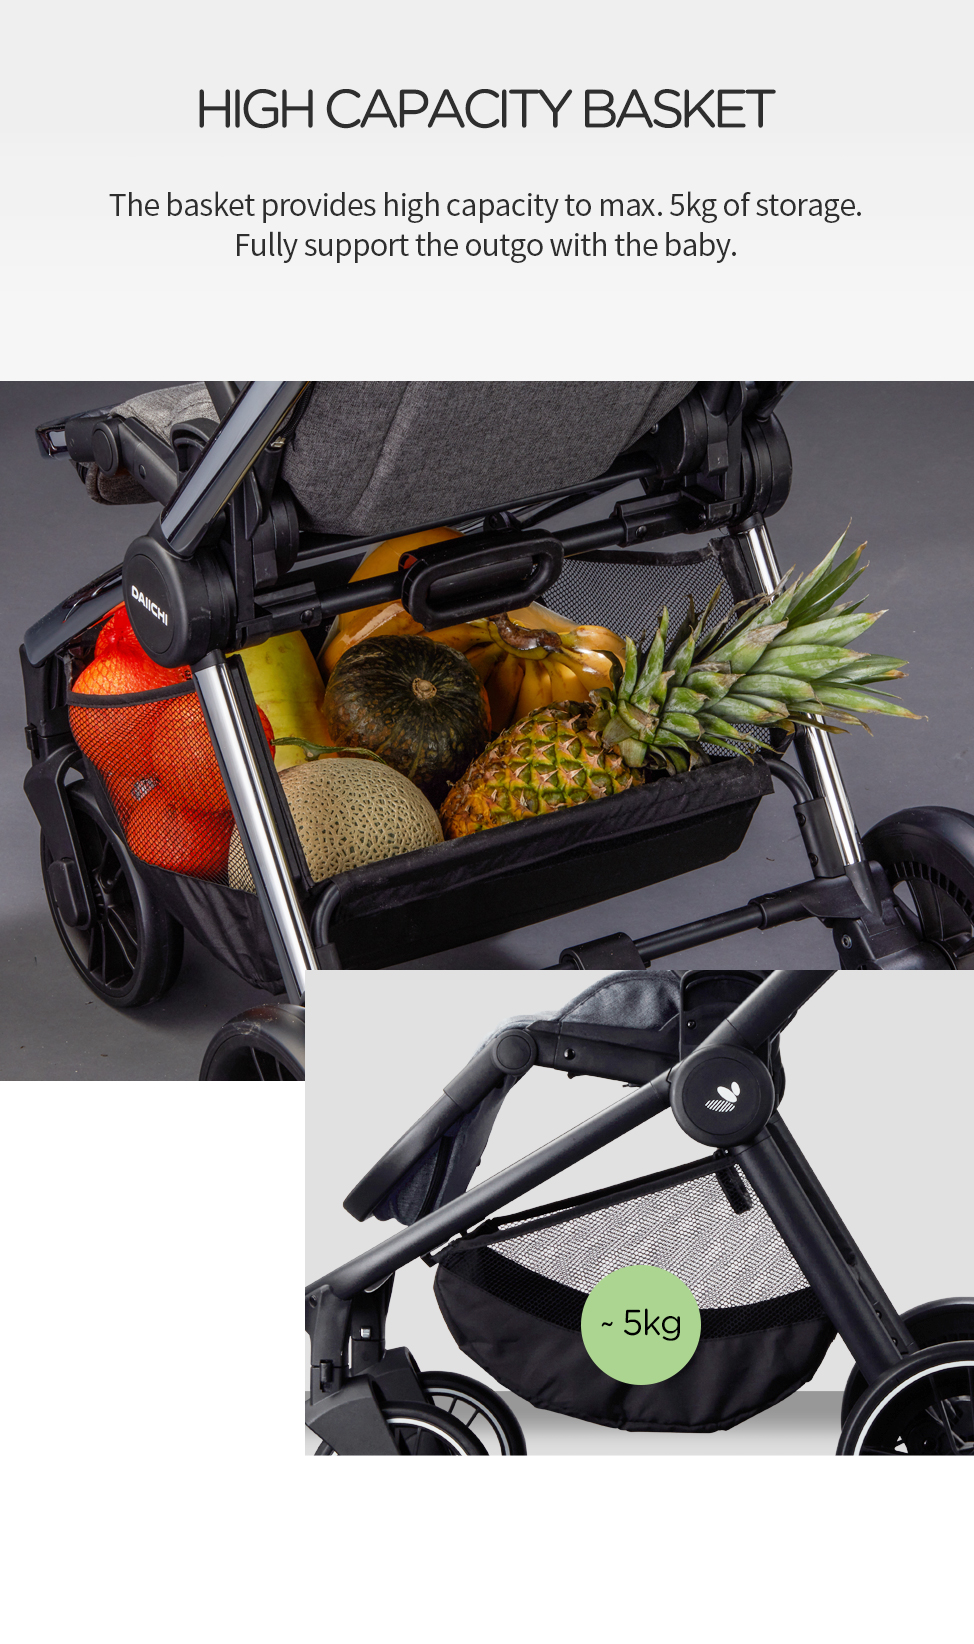 The basket provides high capacity to max. 5kg of storage. Fully support the outgo with the baby.